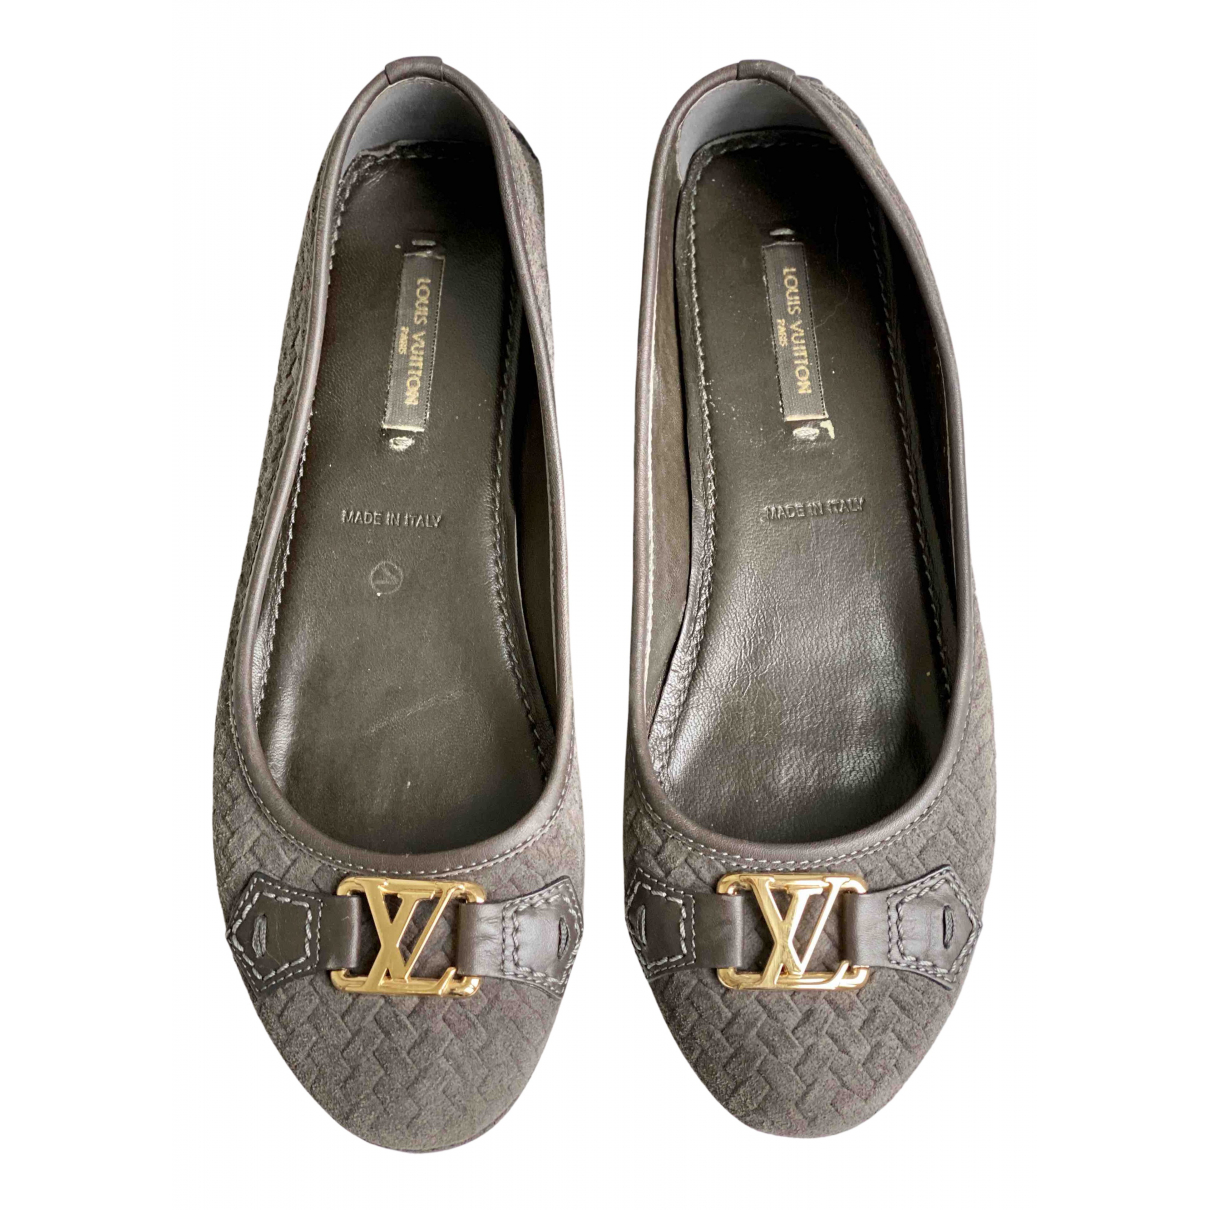 Louis Vuitton \N Ballerinas in  Grau Leder